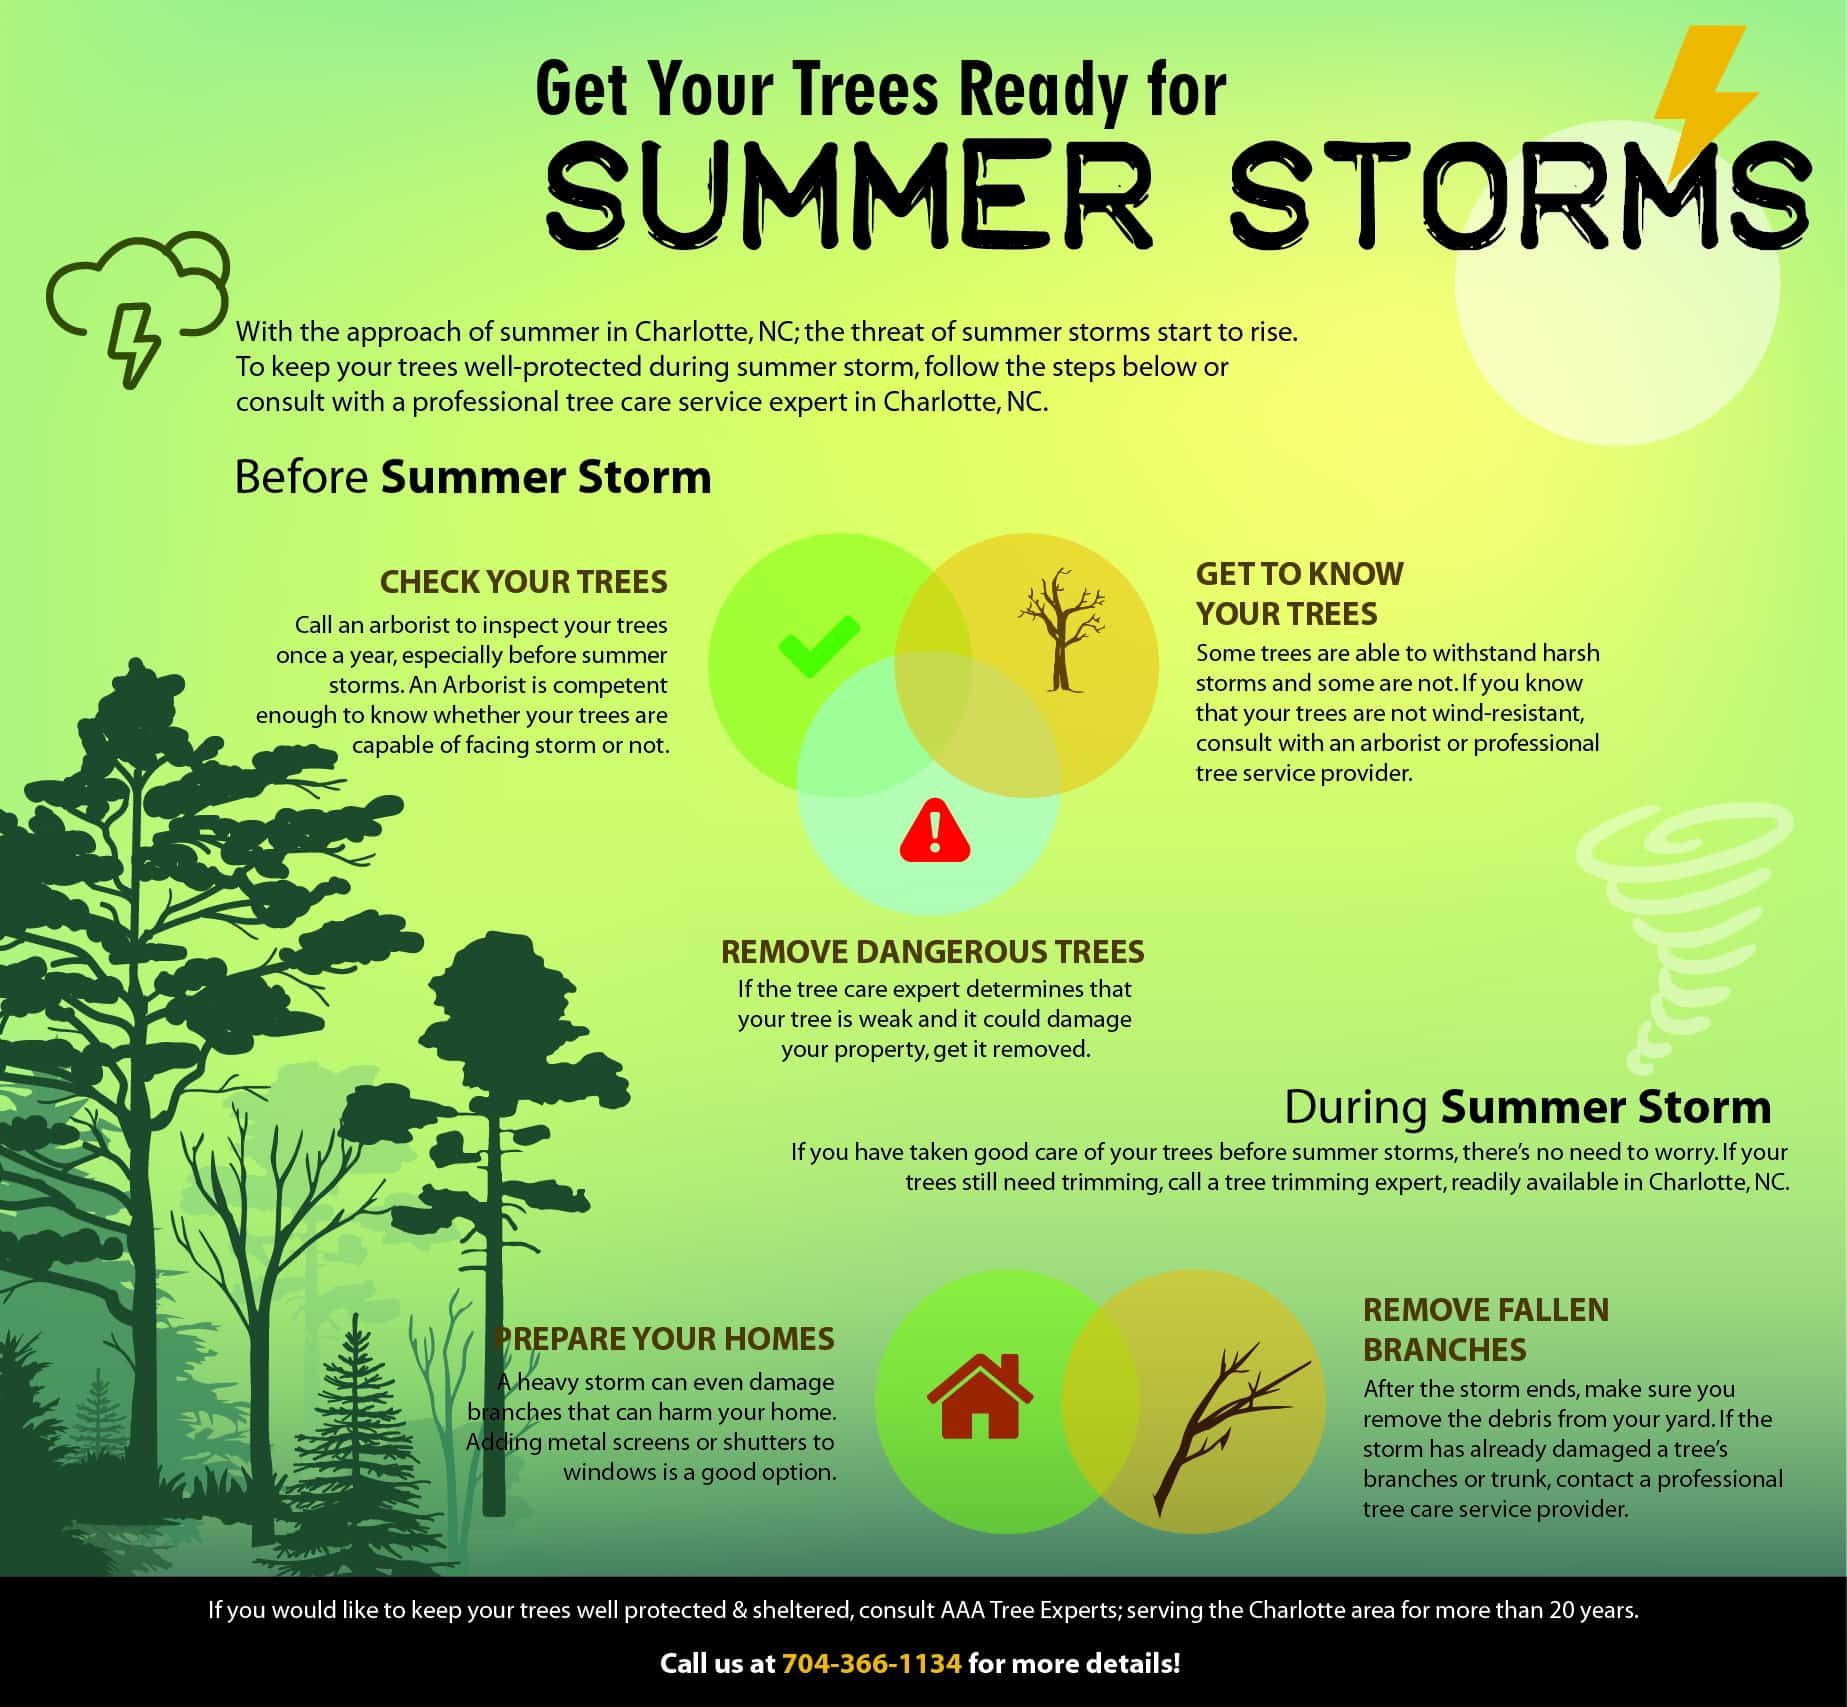 Get Ready for Summer Storms